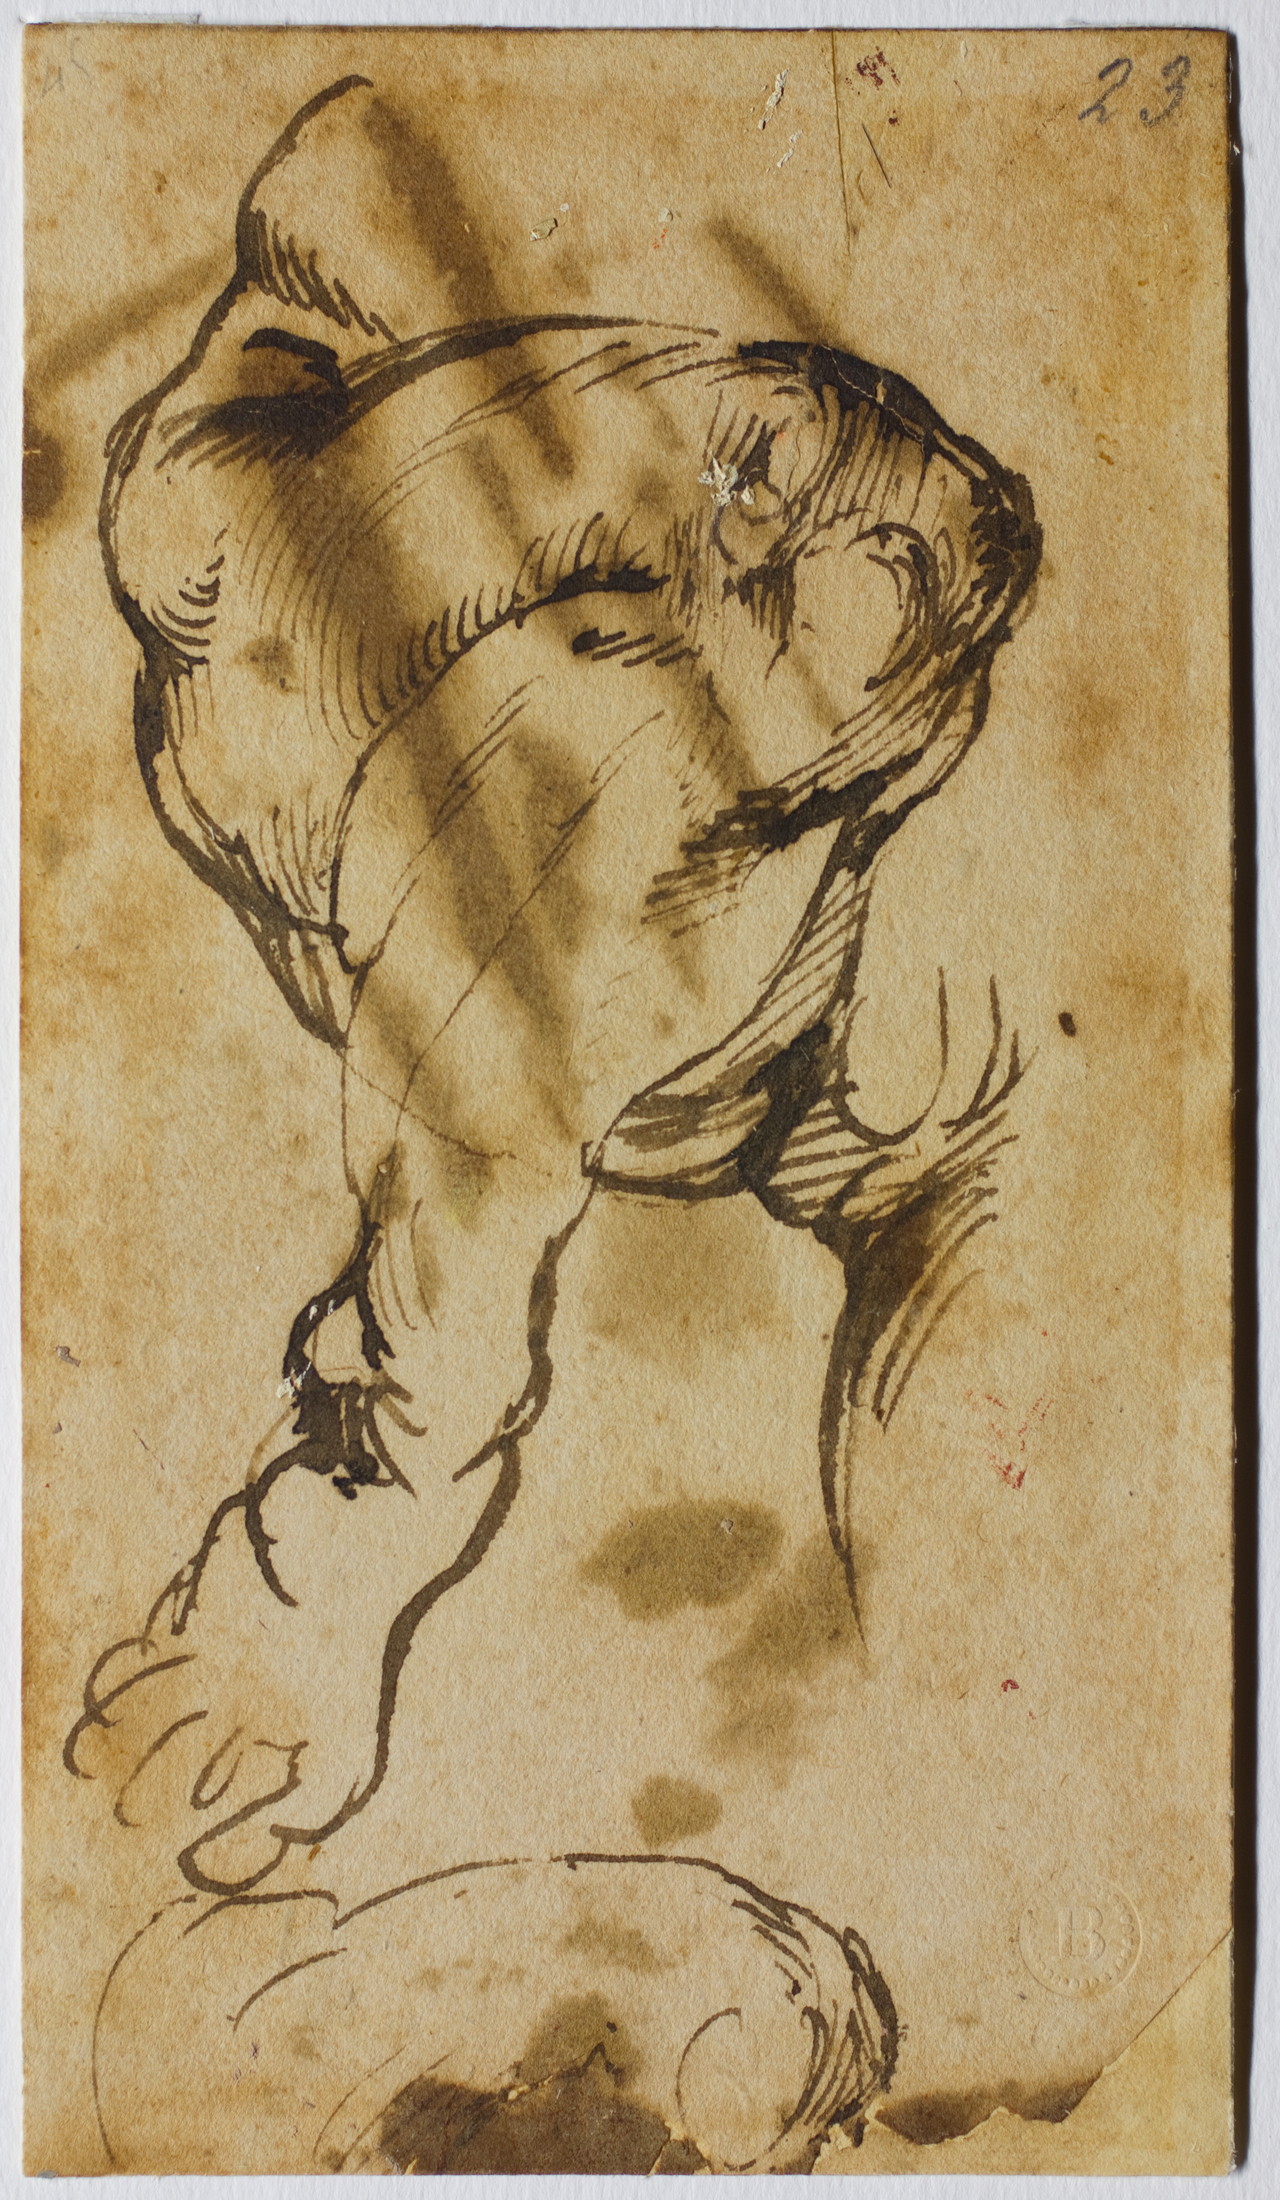 """Michelangelo, """"Study for the Leg of the Christ Child in the 'Doni Tondo'"""" (1506) (click to enlarge)"""